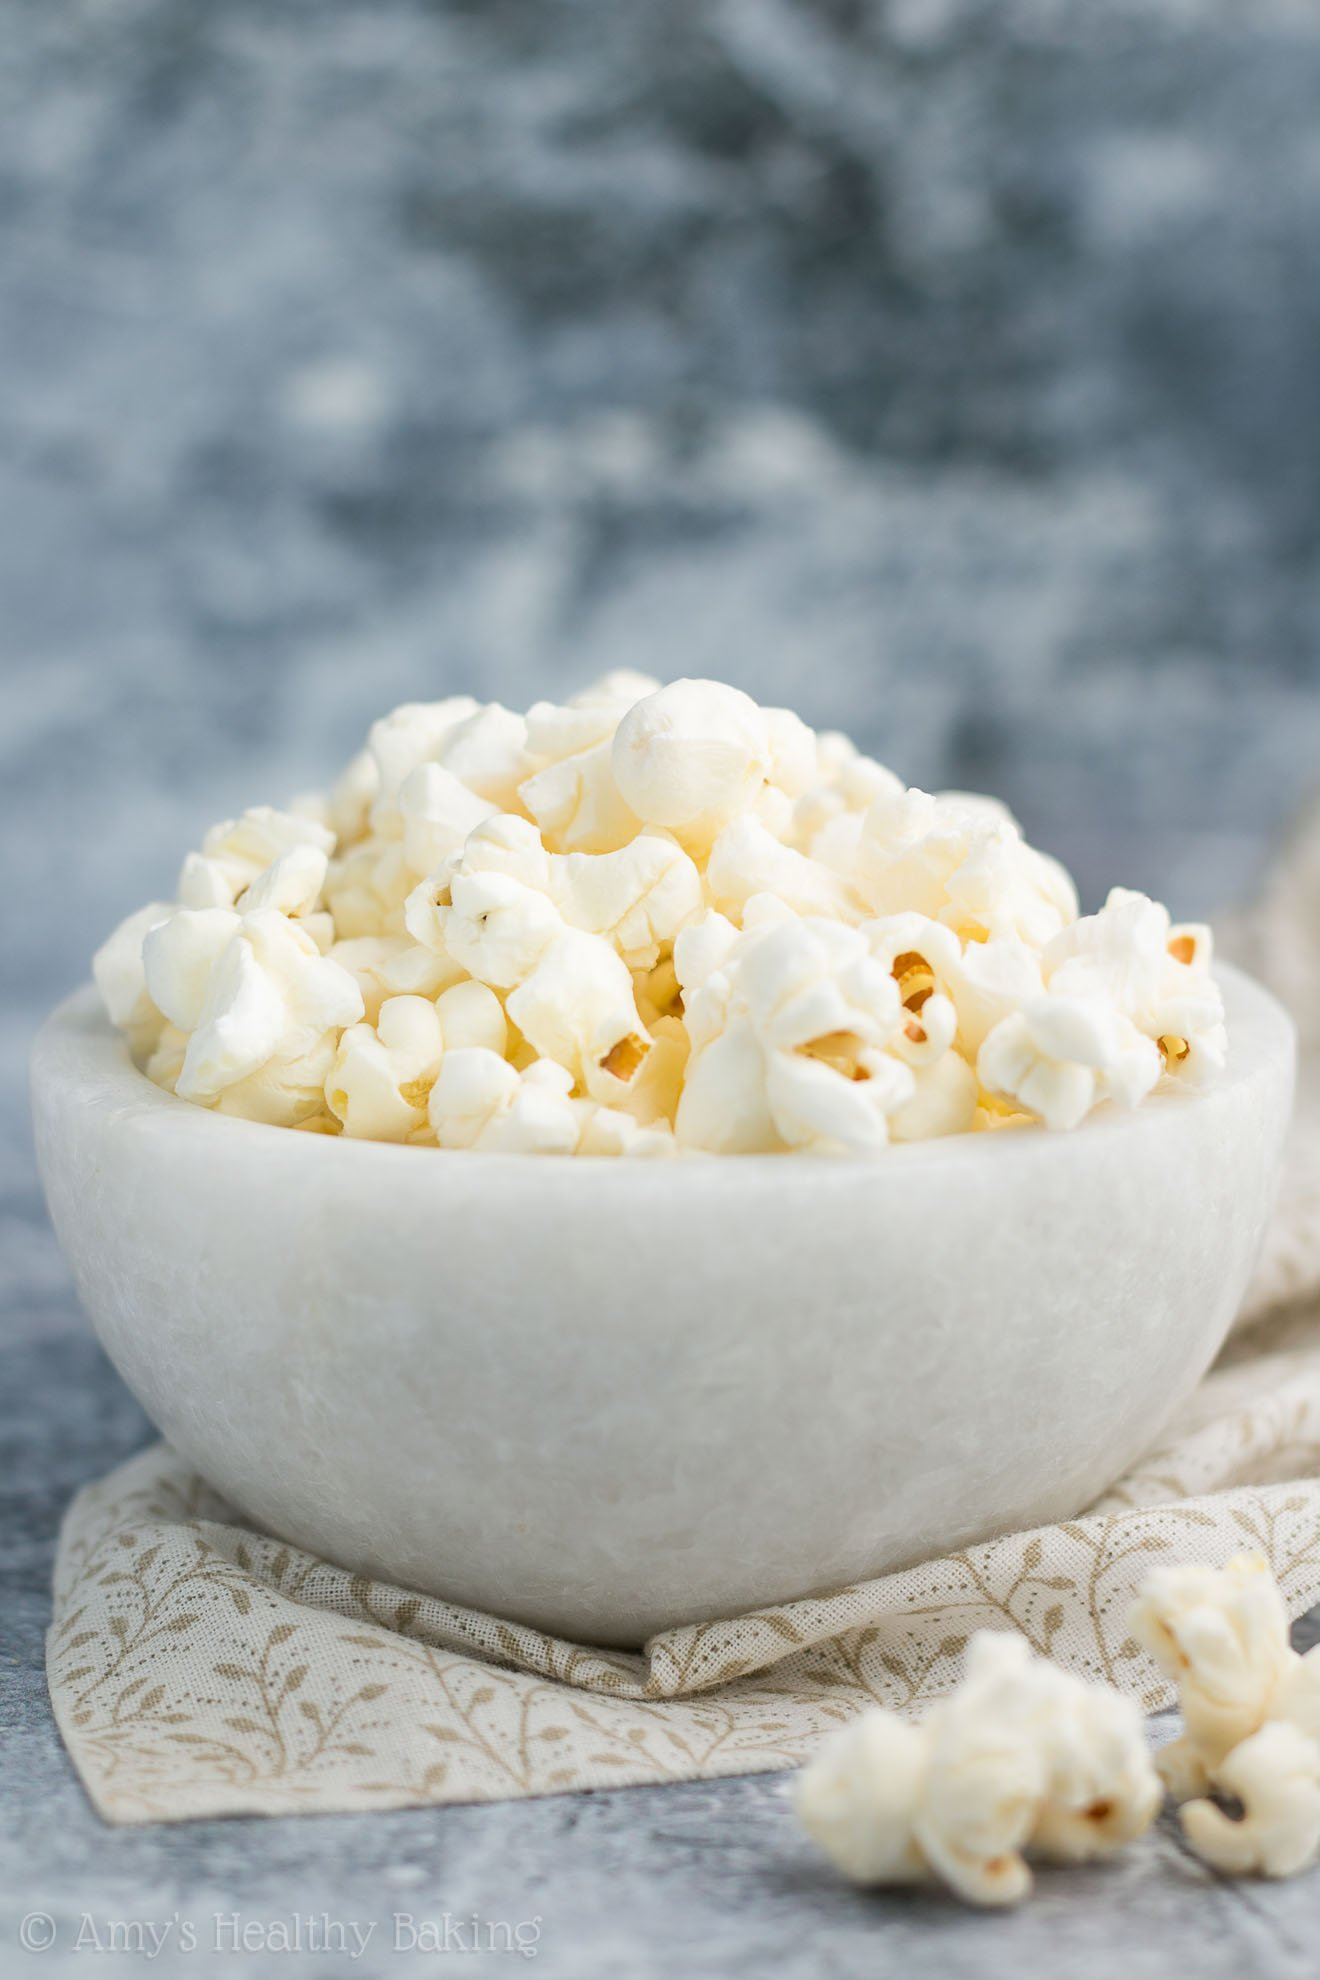 How to Make Healthy Homemade Air Popped Popcorn